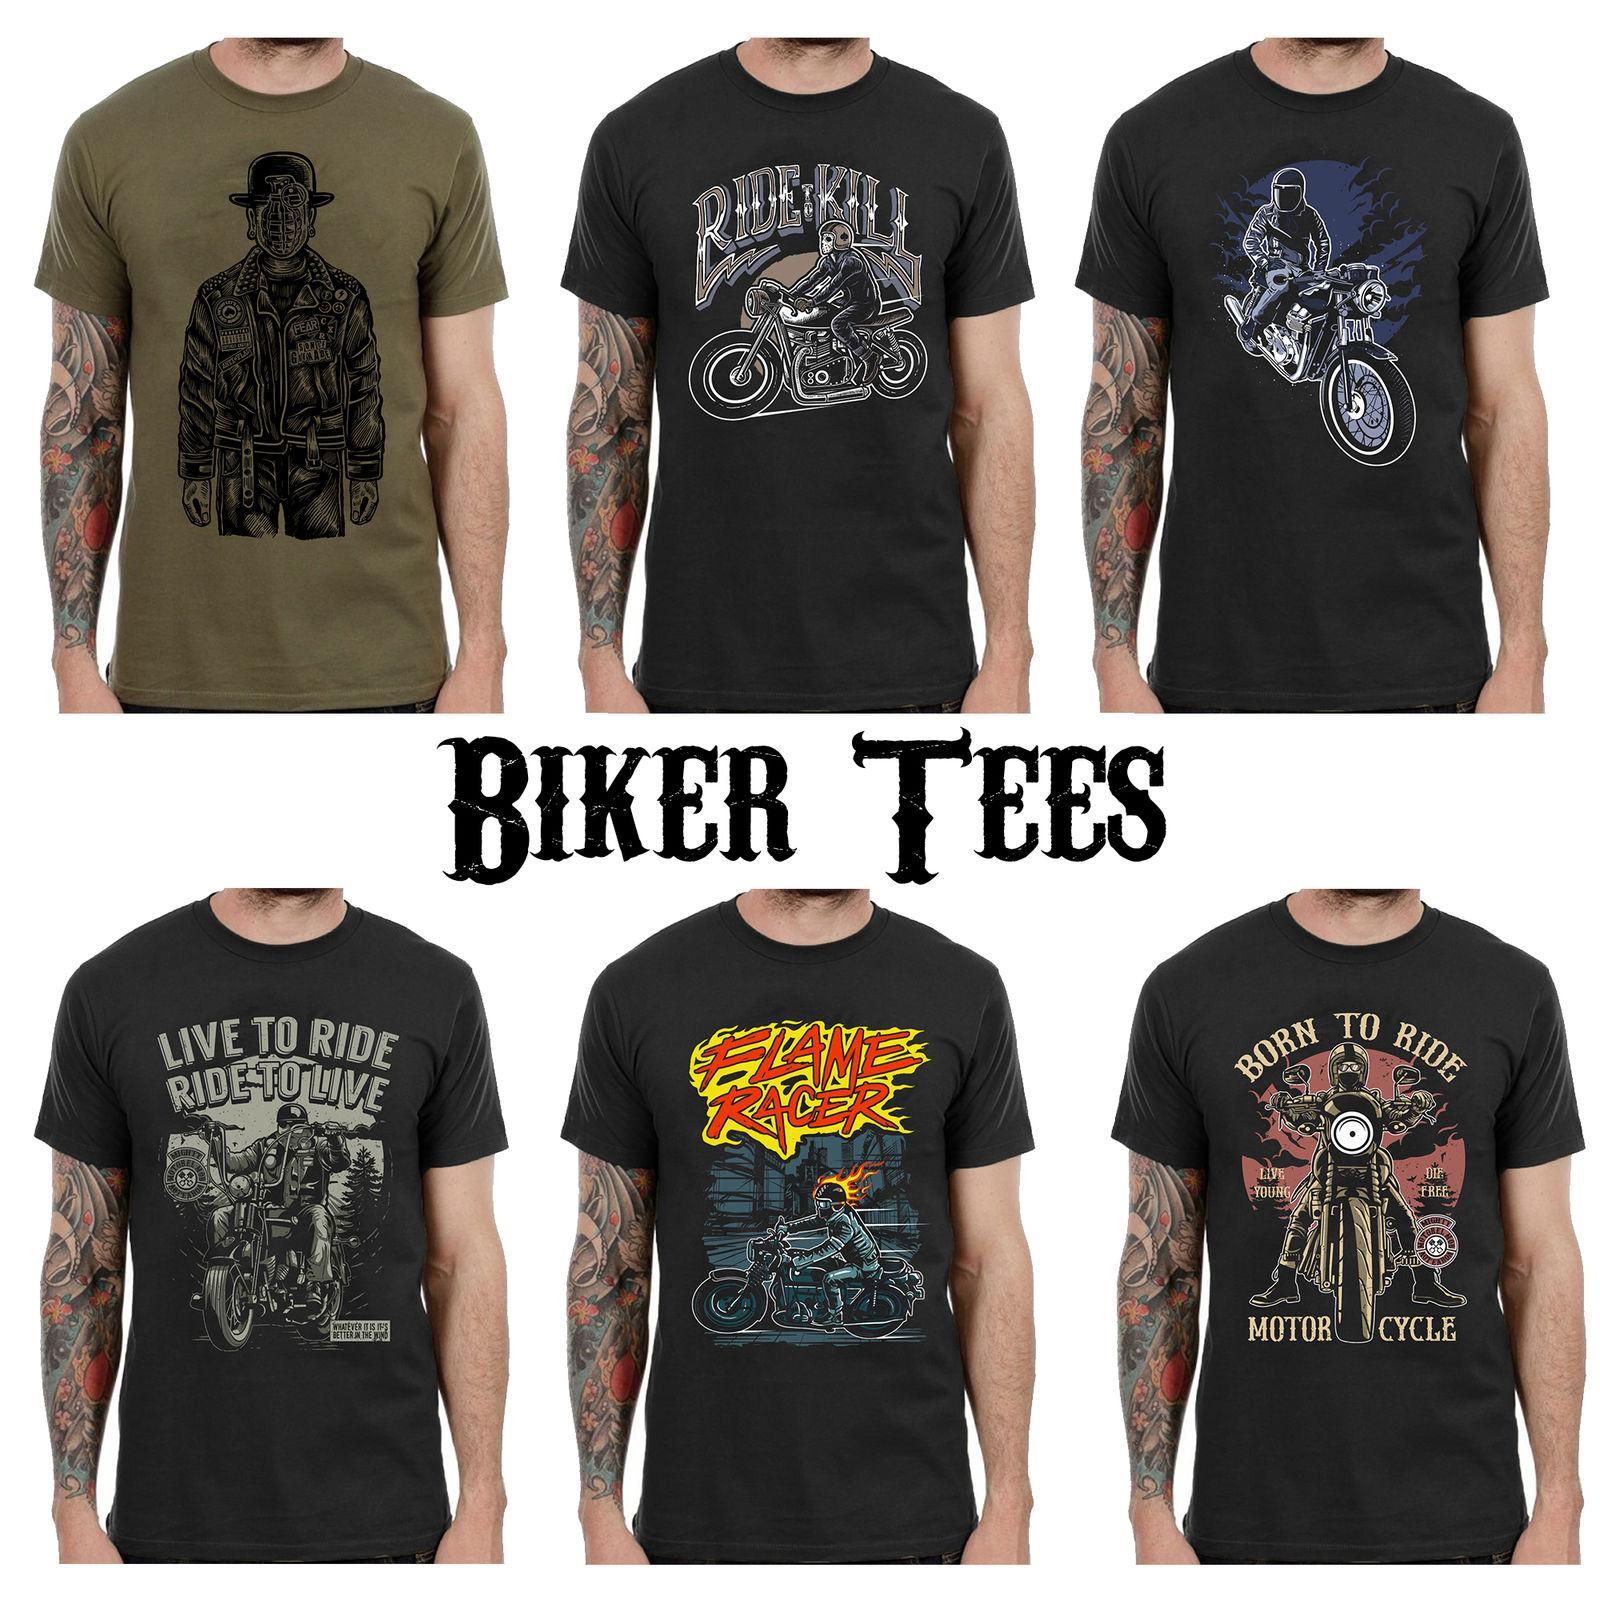 d5354c395 Biker T Shirts Motorcycle Graphic Tshirt Clothing Men Women Kids Printed  L188 Cool Casual Pride T Shirt Men Unisex New Trendy T Shirts Offensive  Shirts From ...